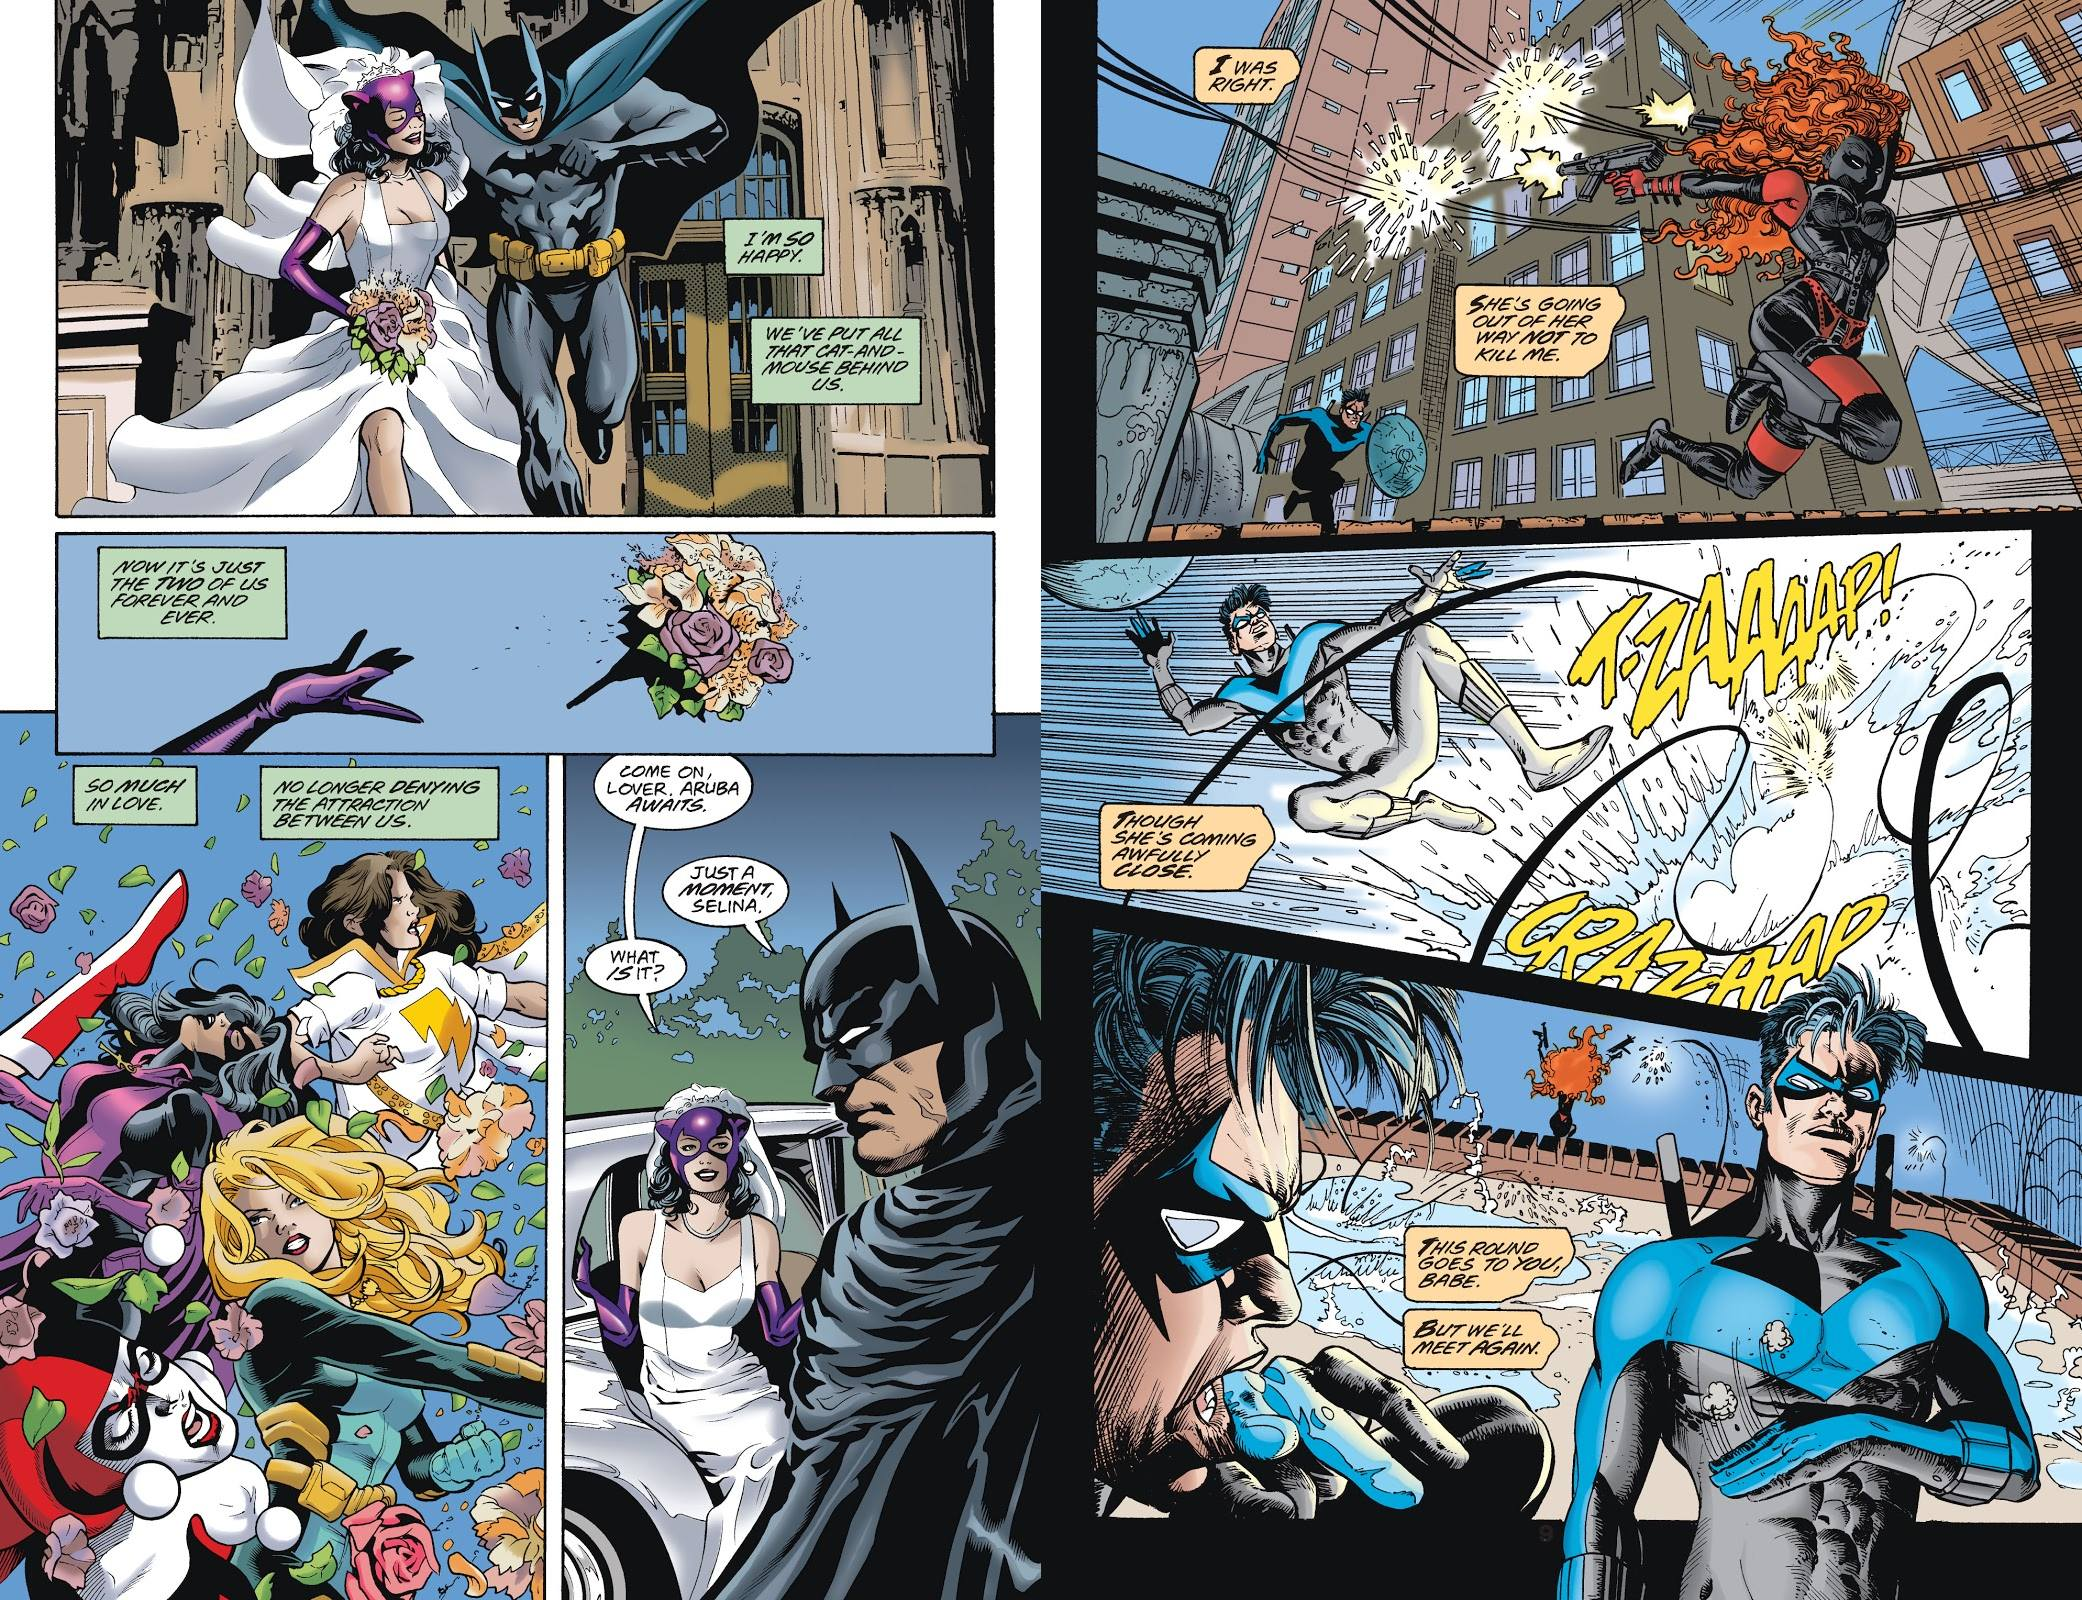 Nightwing To Serve and Protect review